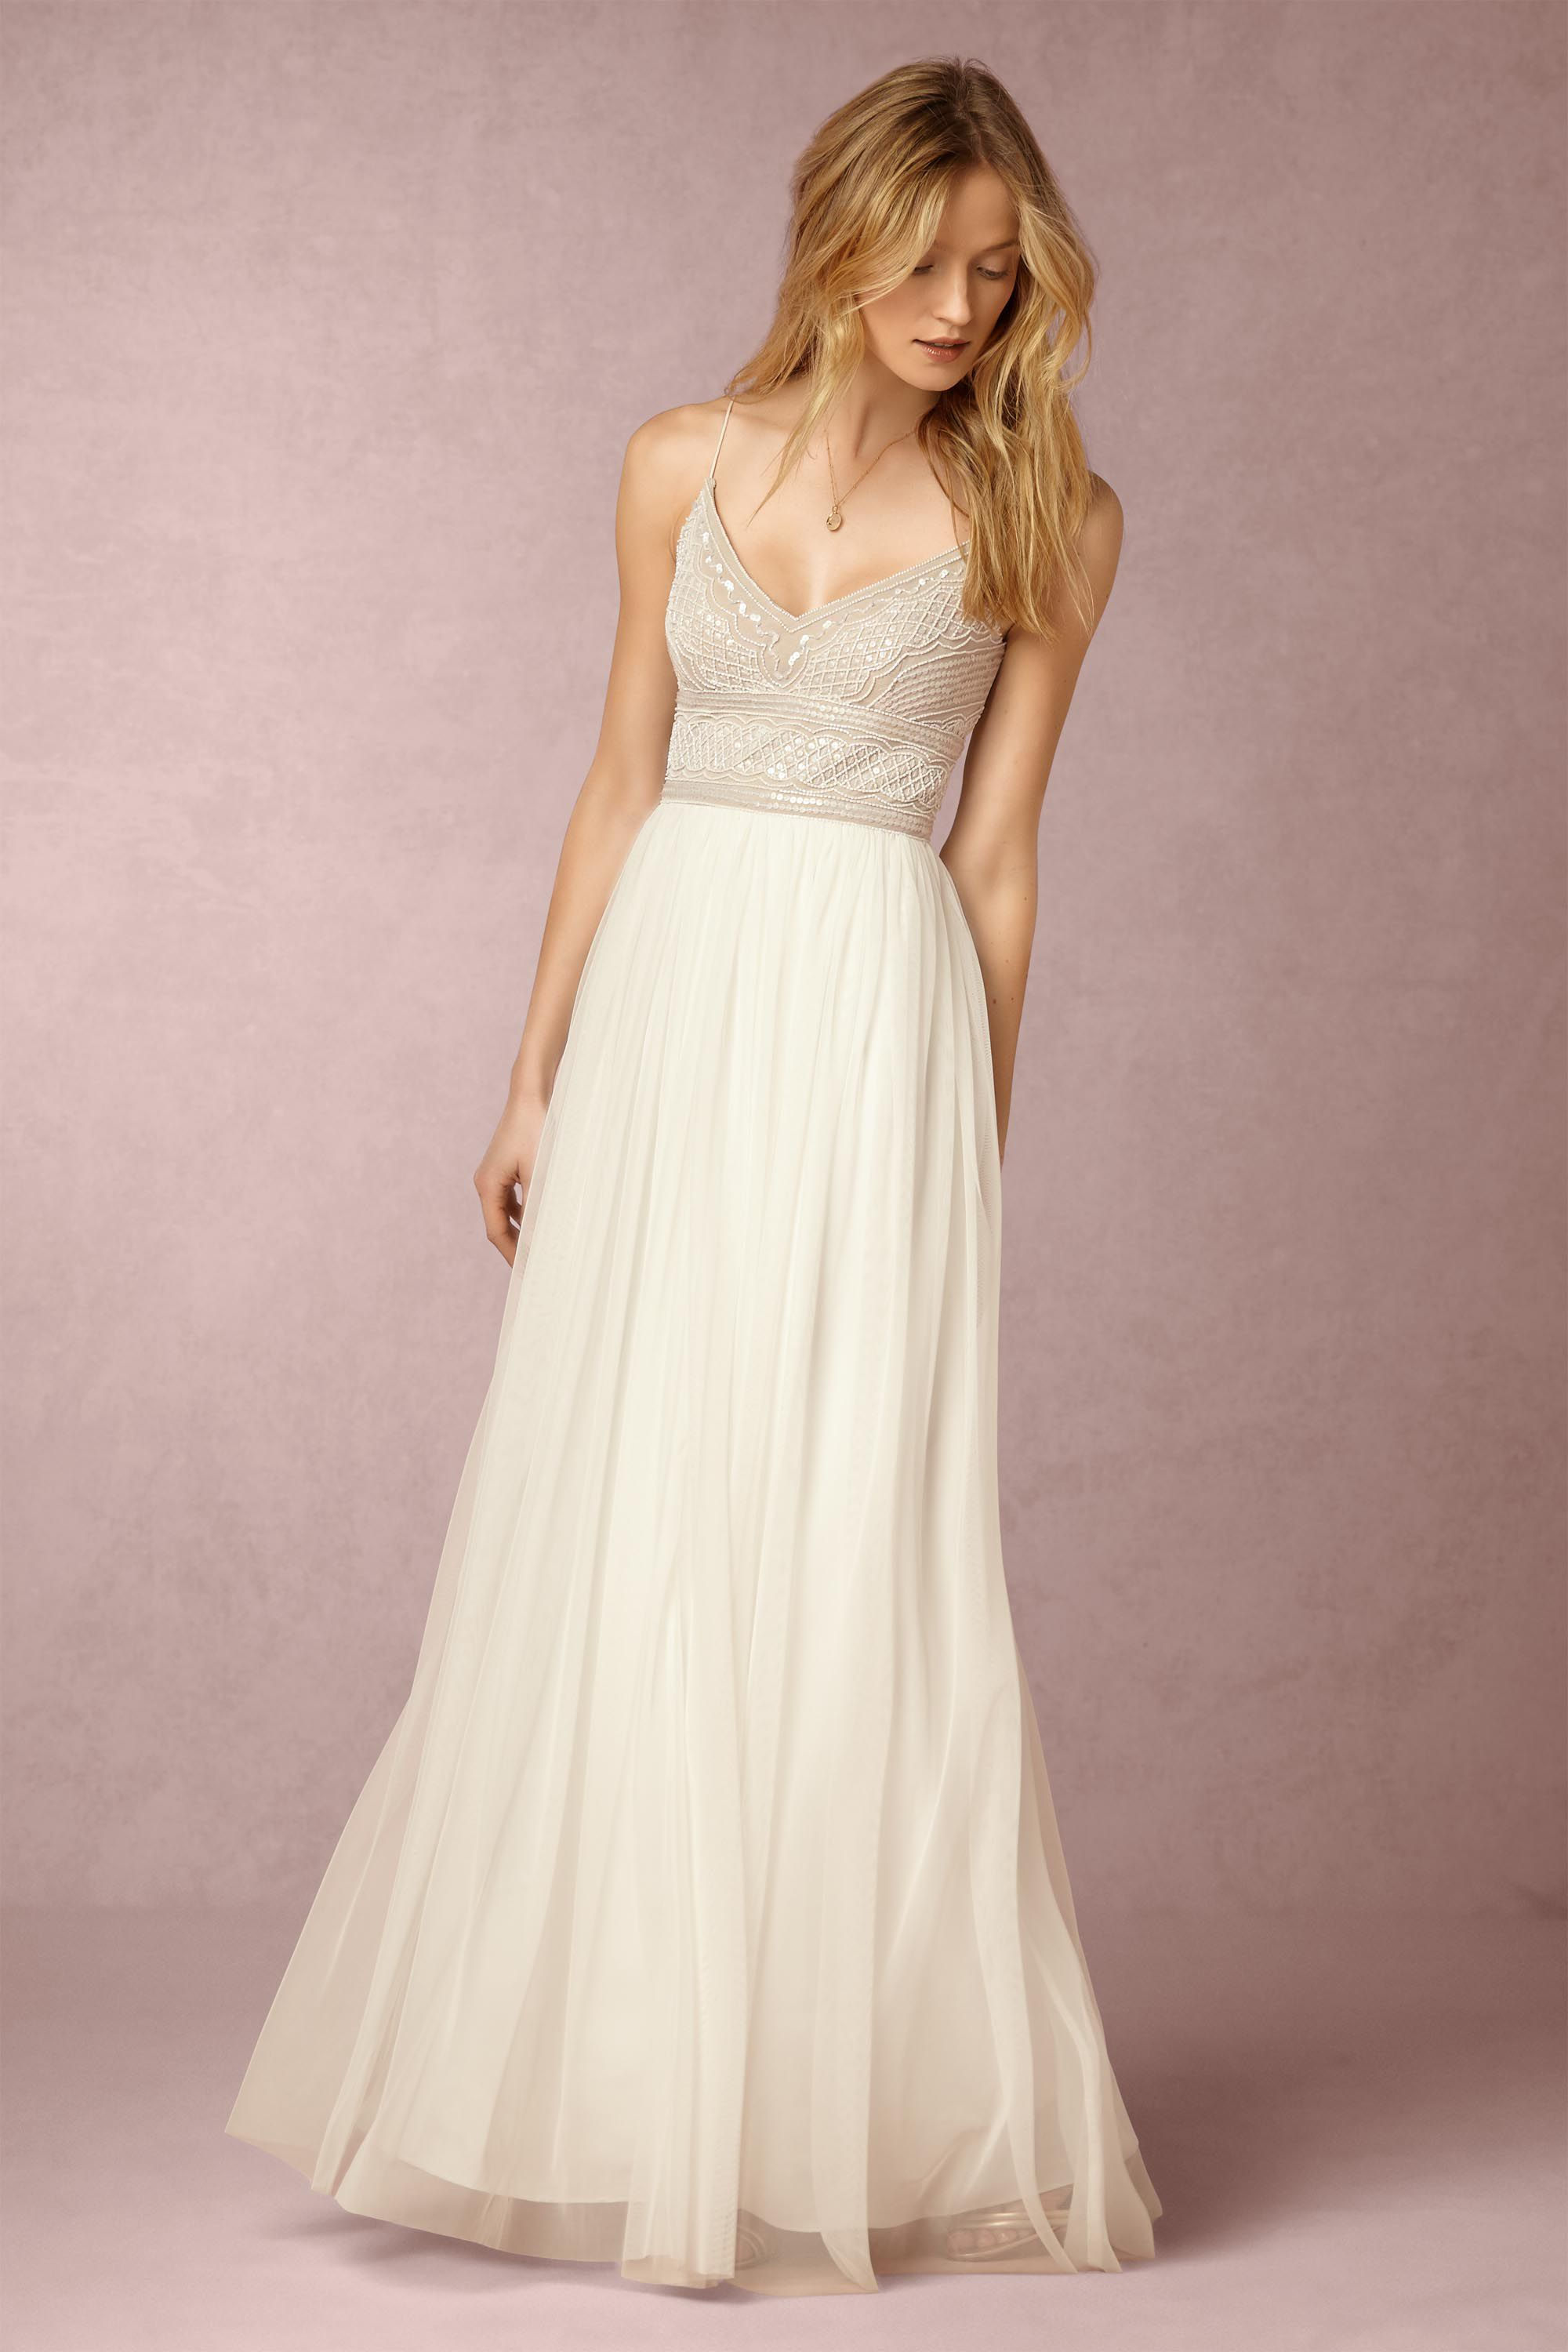 Naya Dress | Where to Buy BHLDN Wedding Dresses